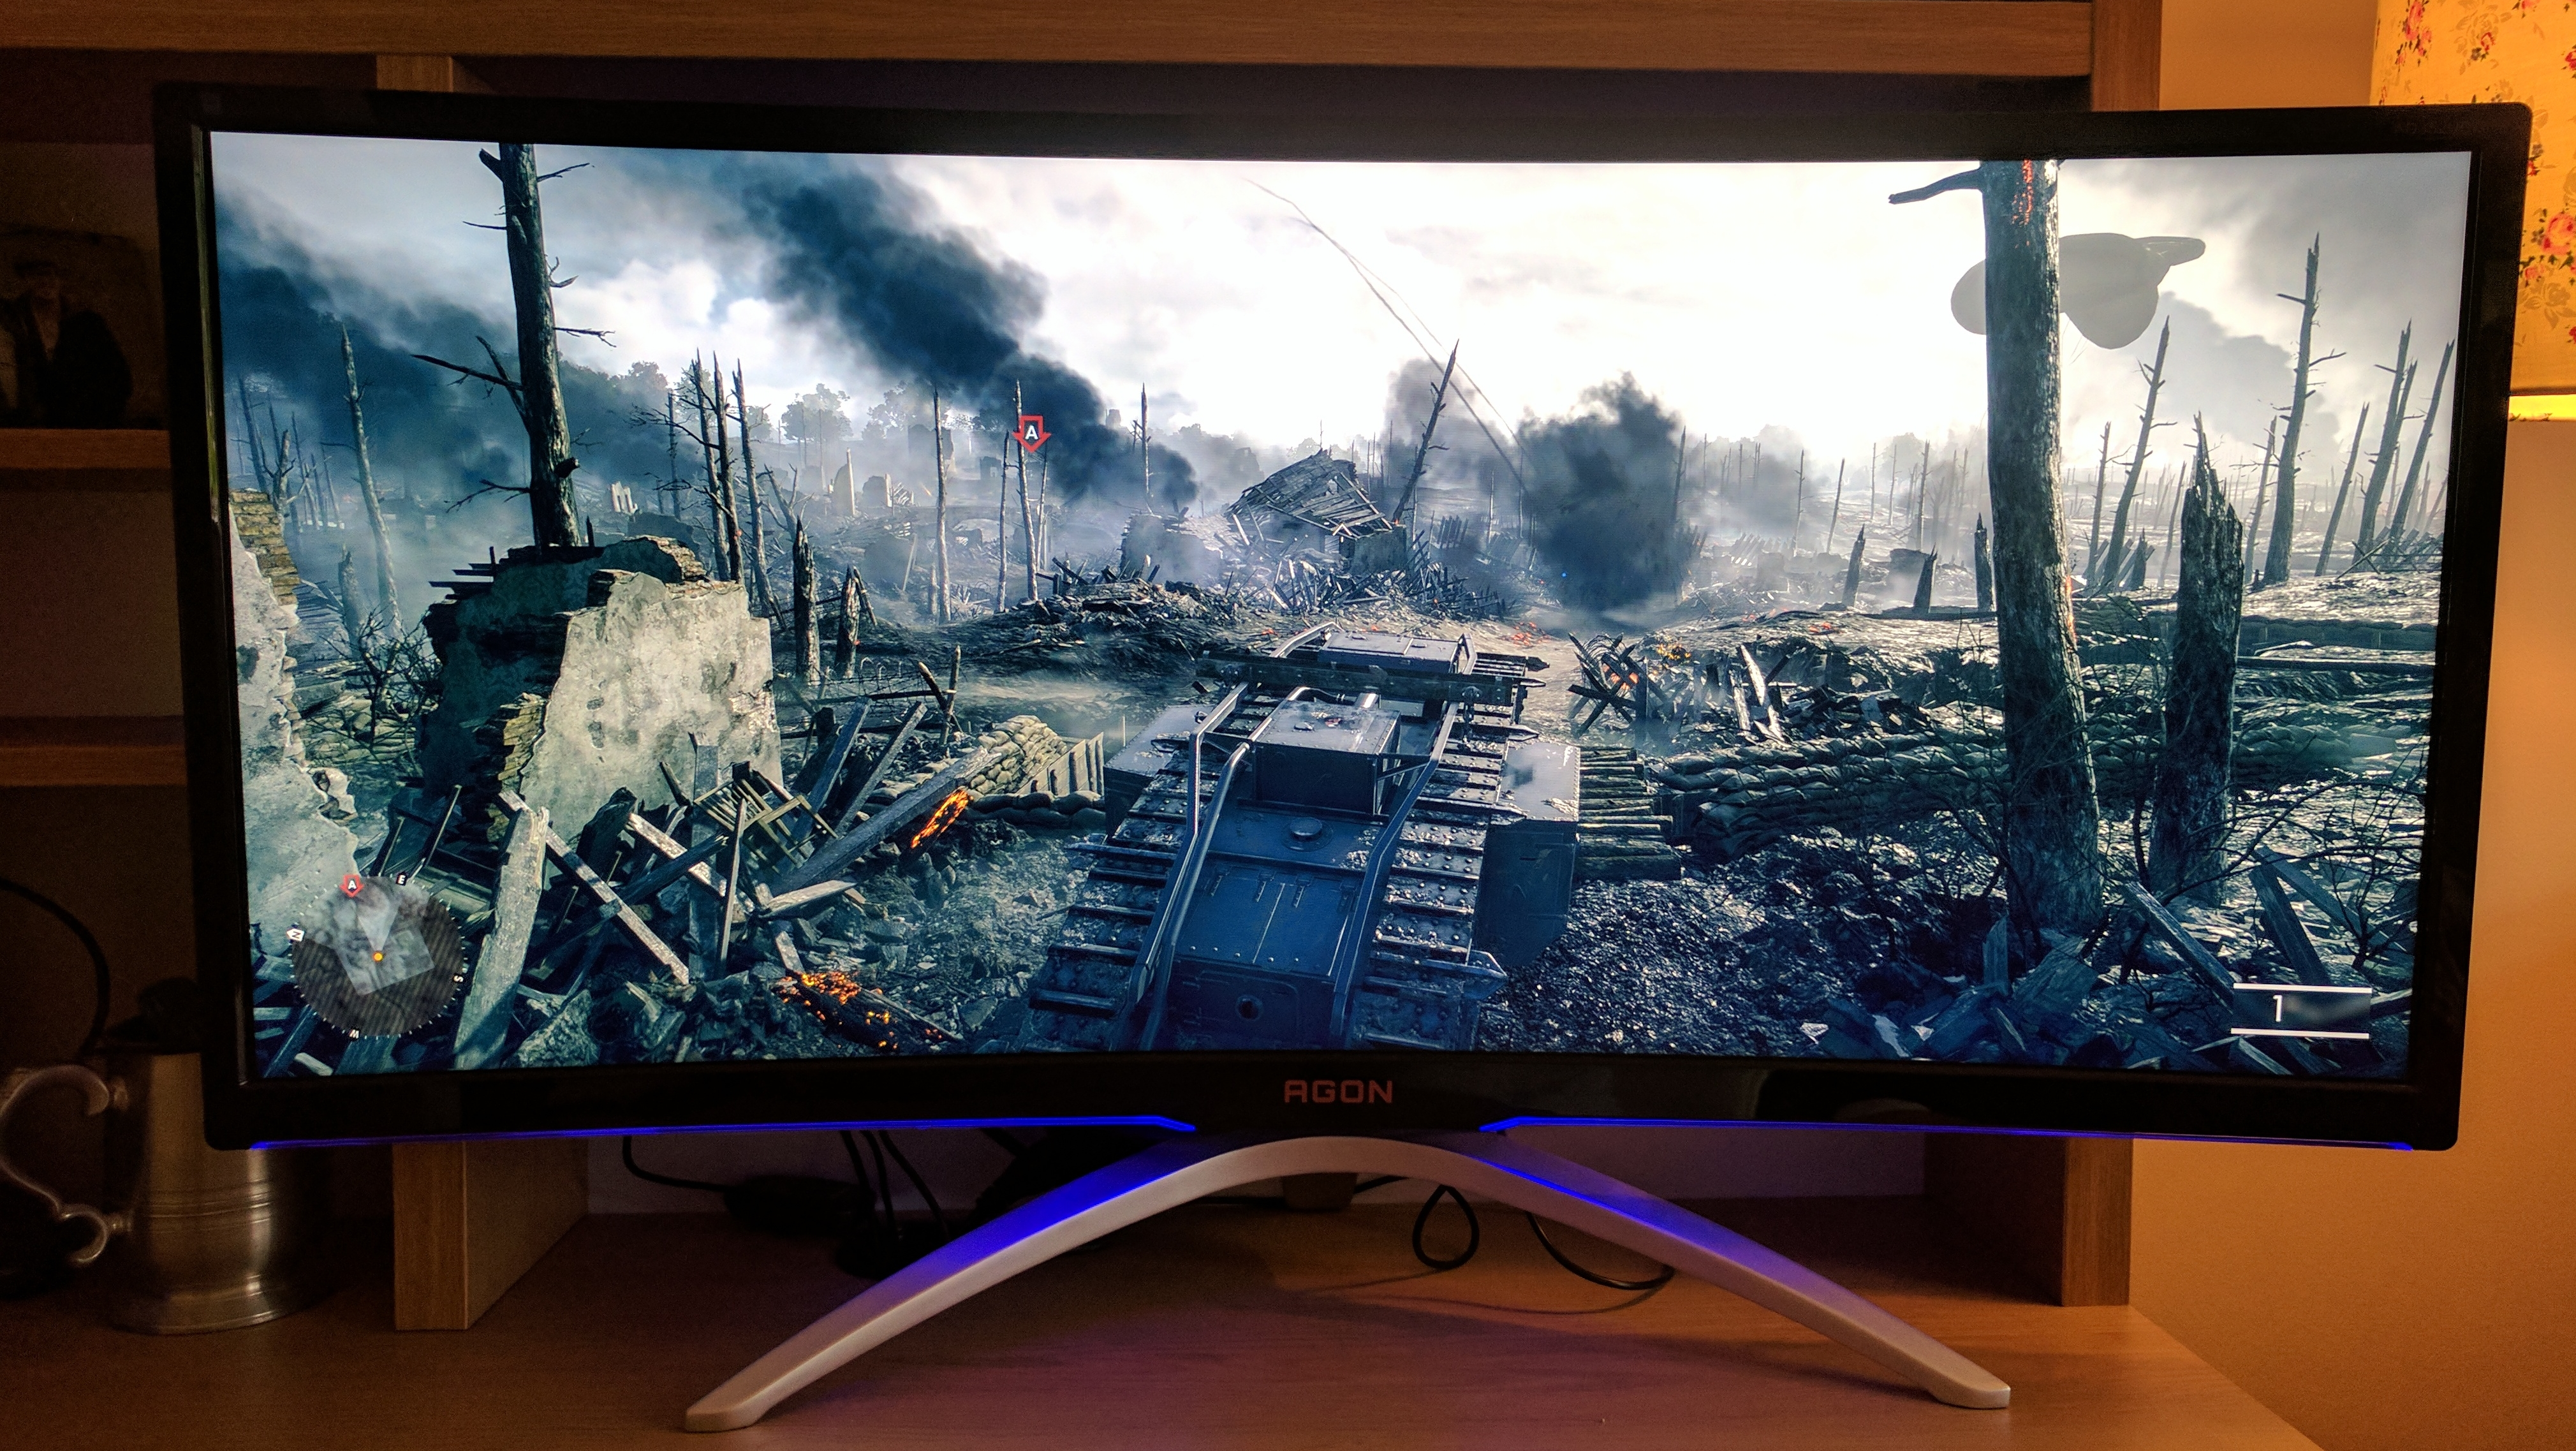 The best gaming monitor 2017: the top gaming screens of the year